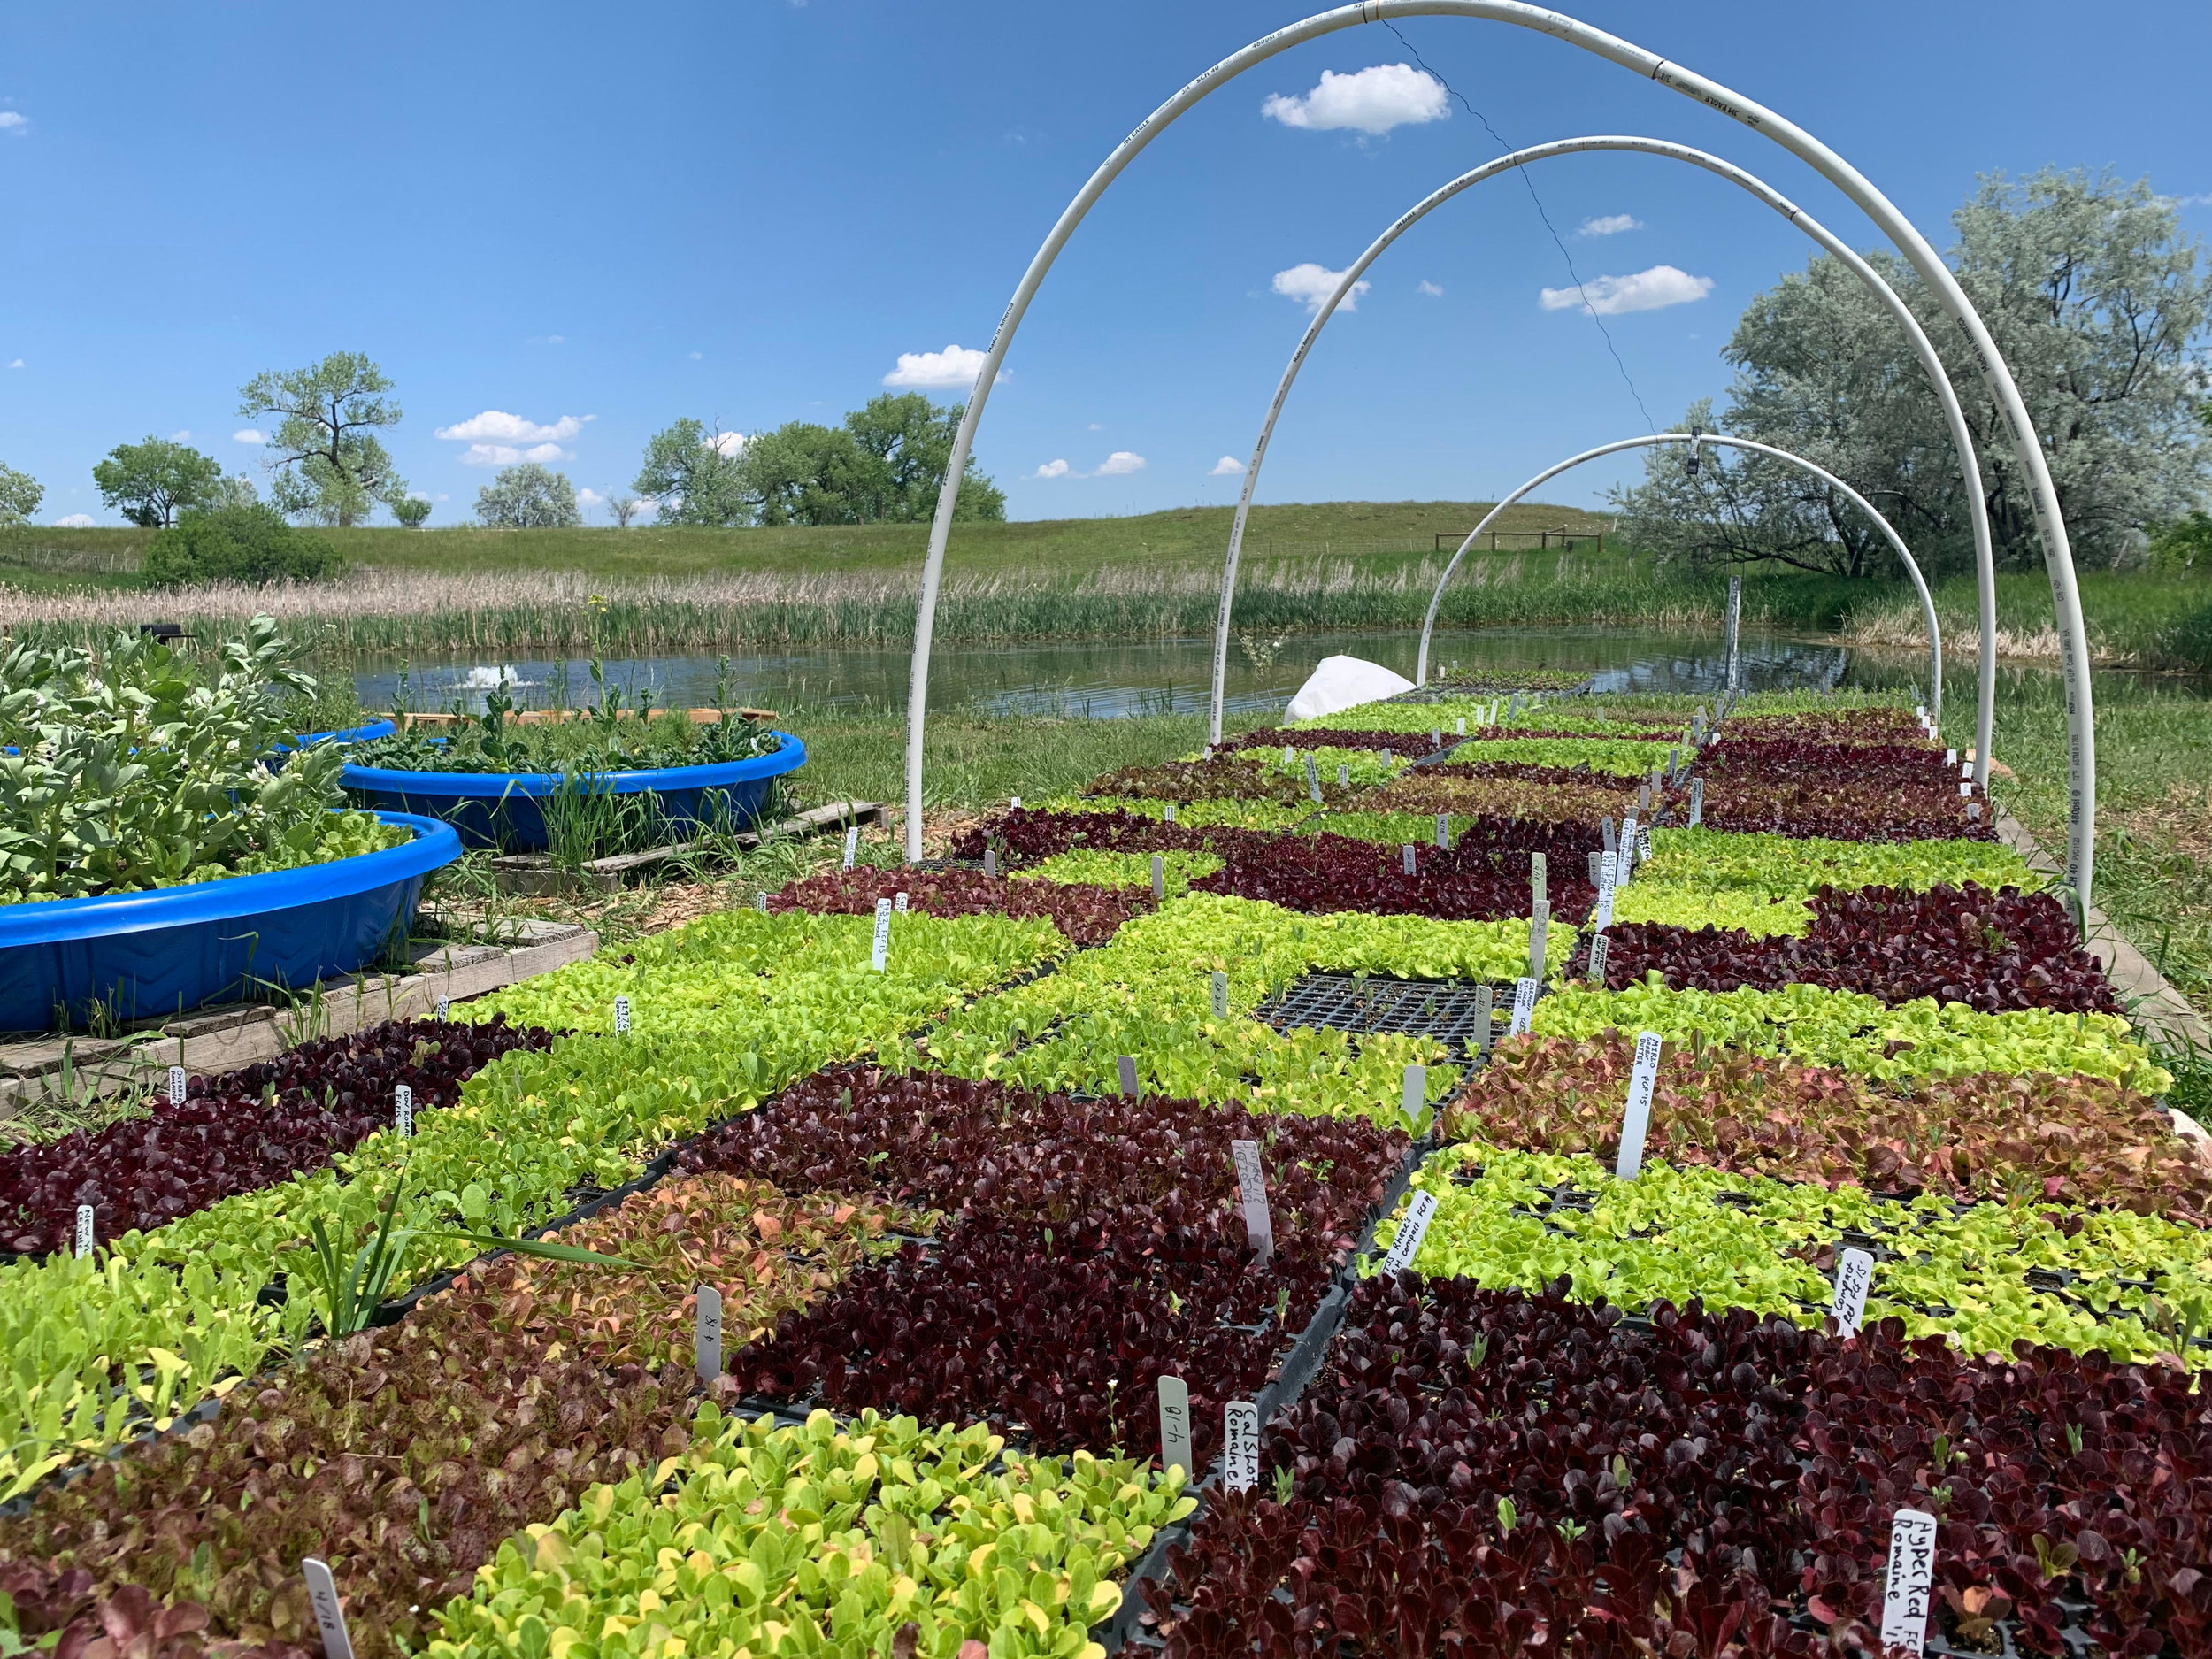 Over 80 varieties of open-pollinated lettuce